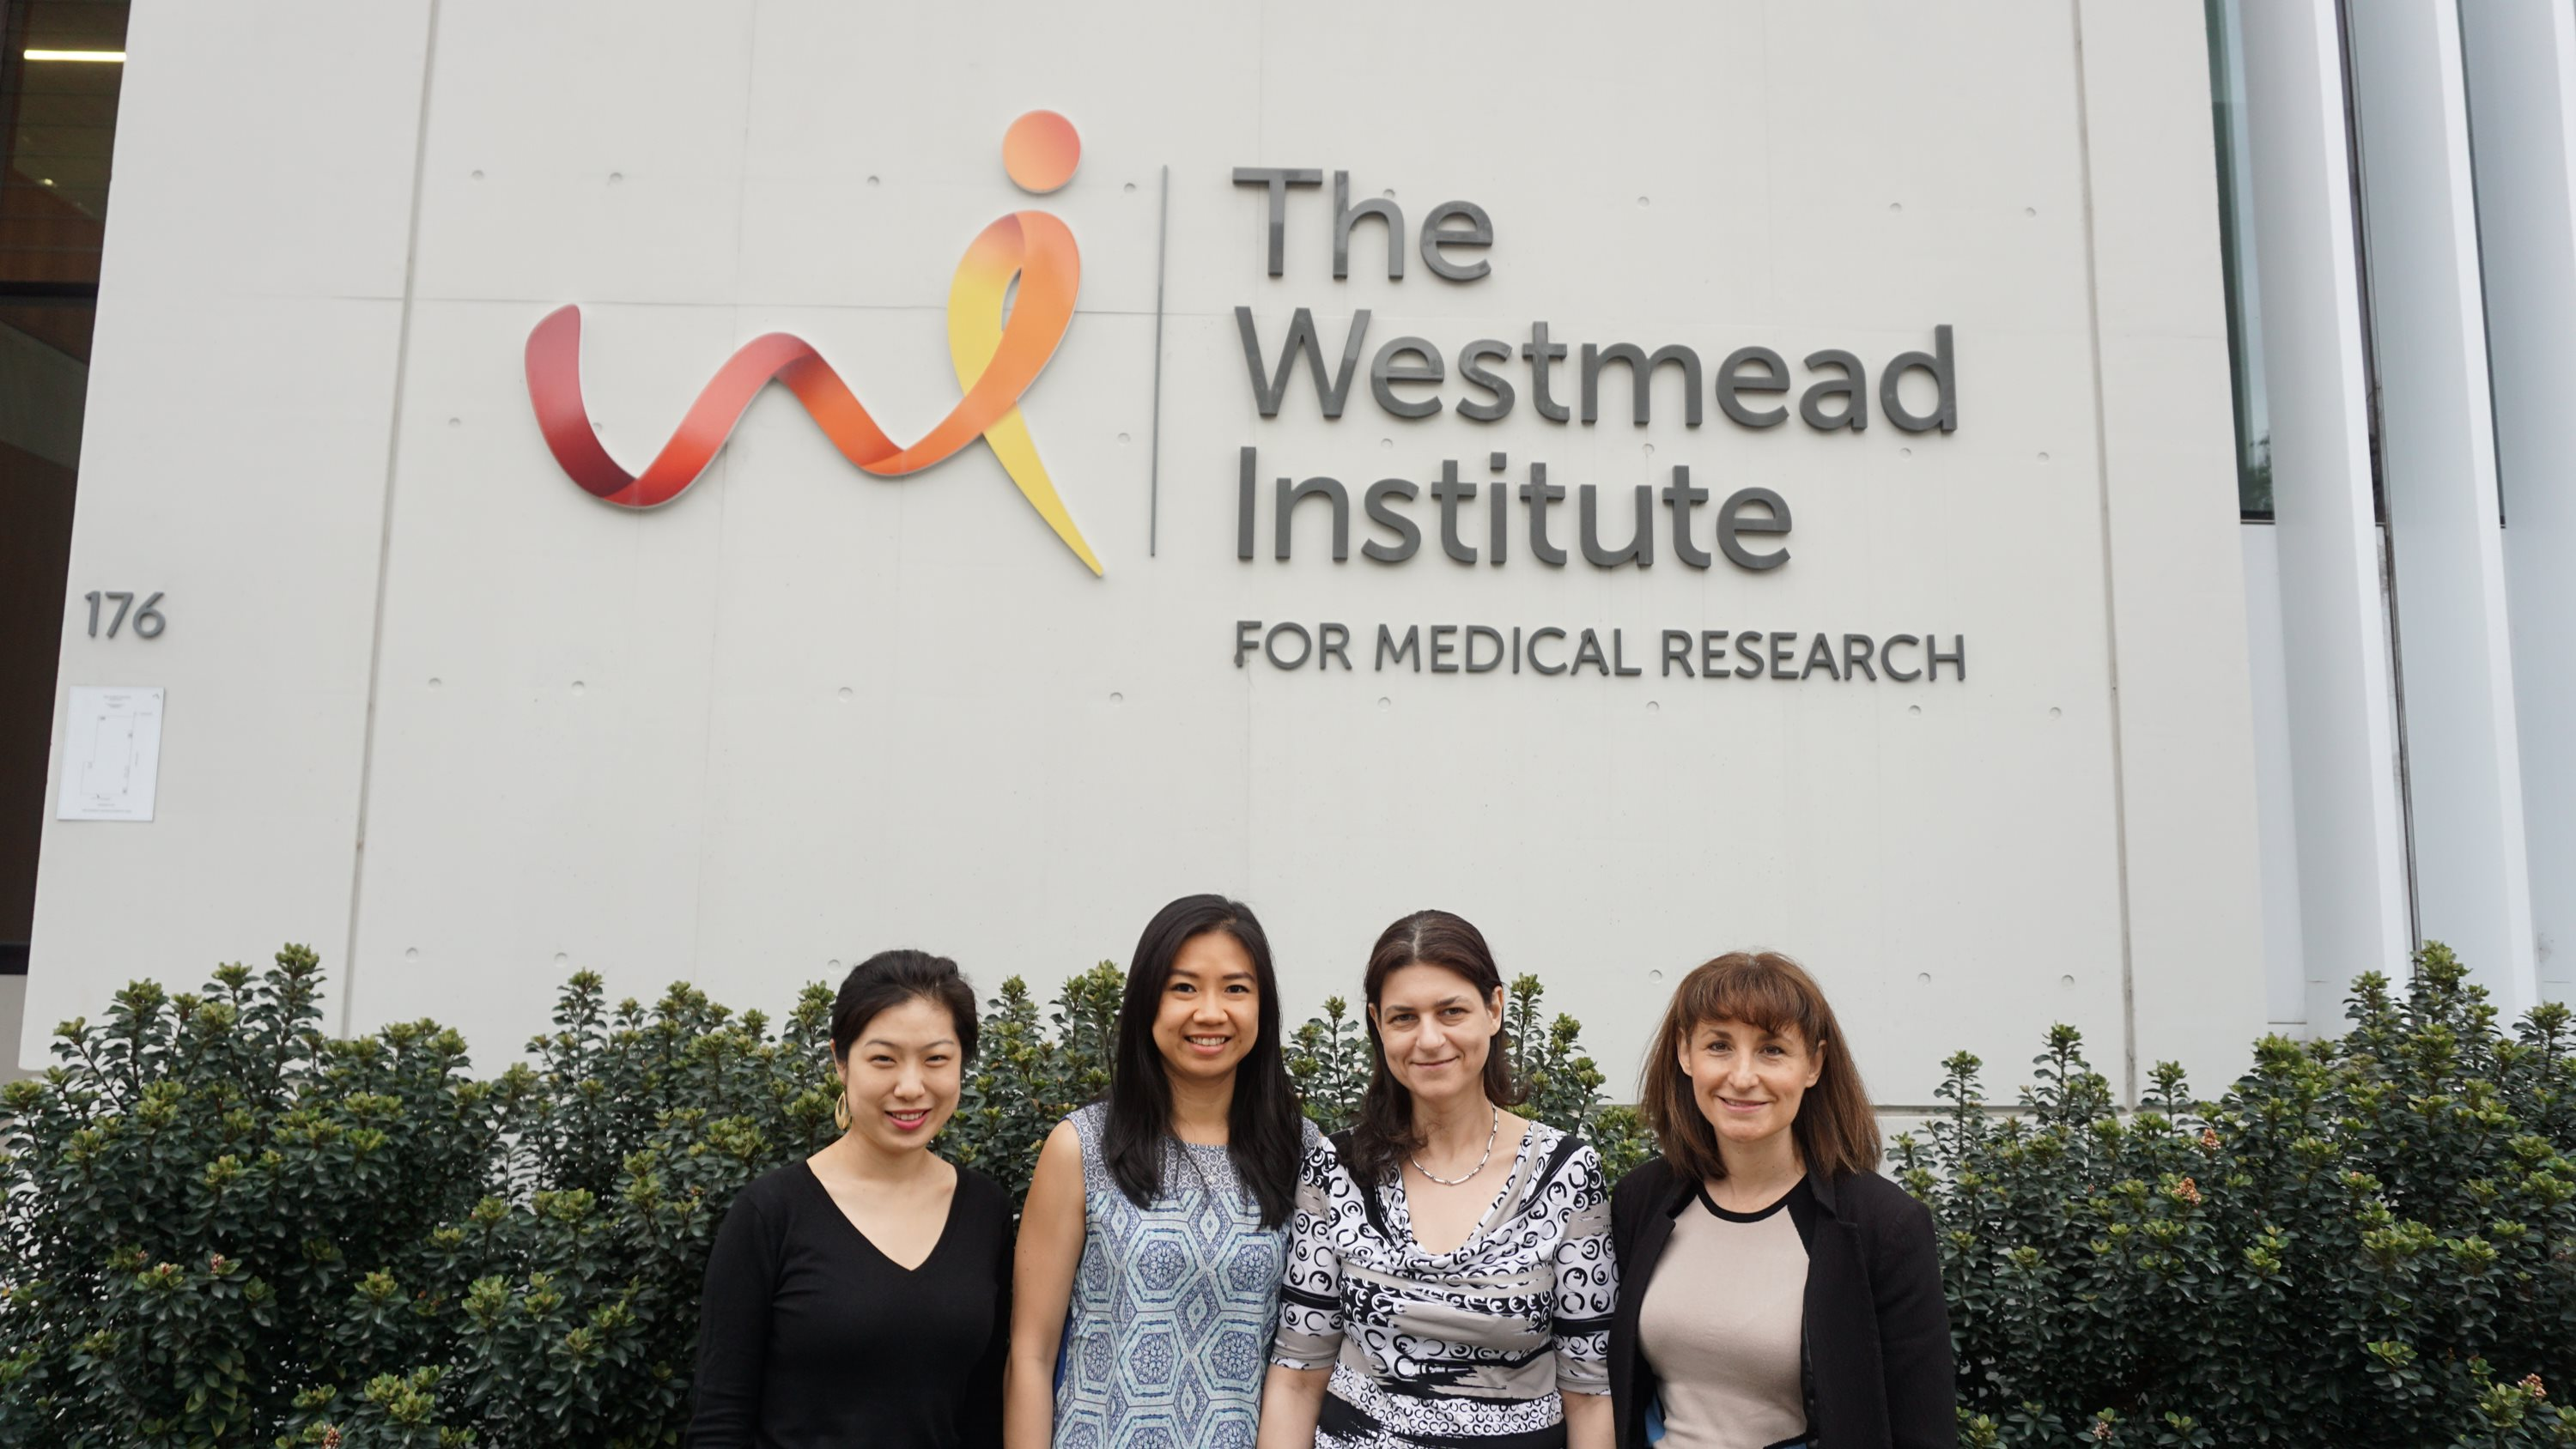 Left to right: Dr Cecilia Li, Desmarini Desmarini, Dr Sophie Lev and Assoc. Prof Julie Djordjevic (Group Leader in Fungal Pathogenesis and lead researcher).